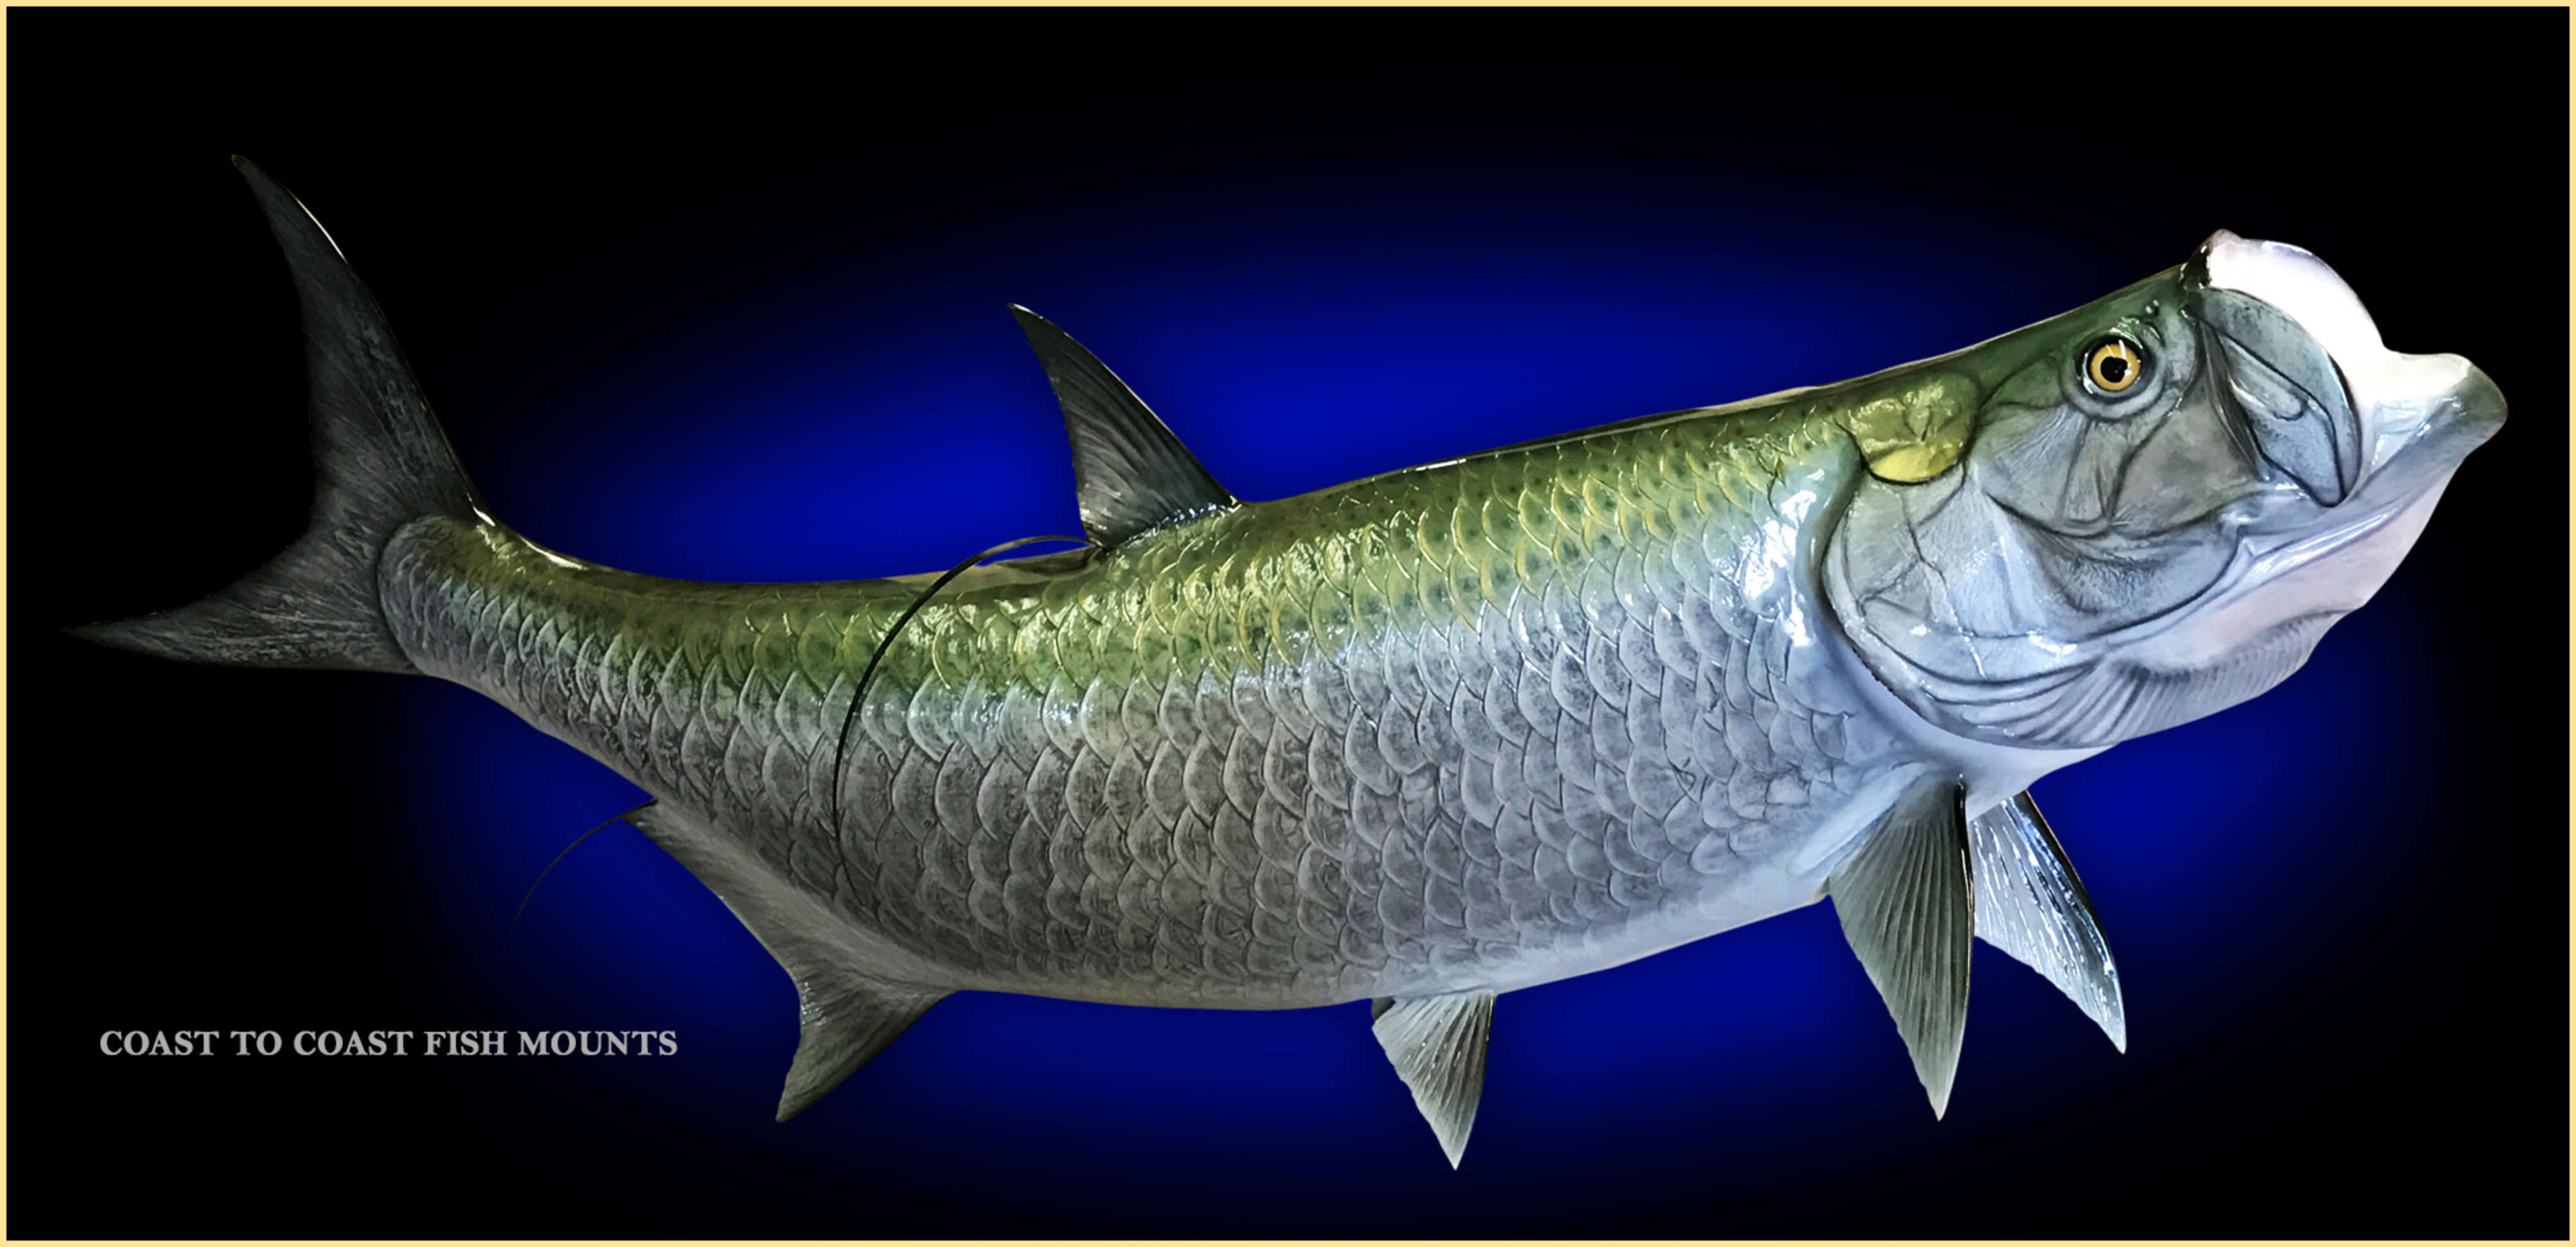 tarpon fish mount and fish replicas coast to coast